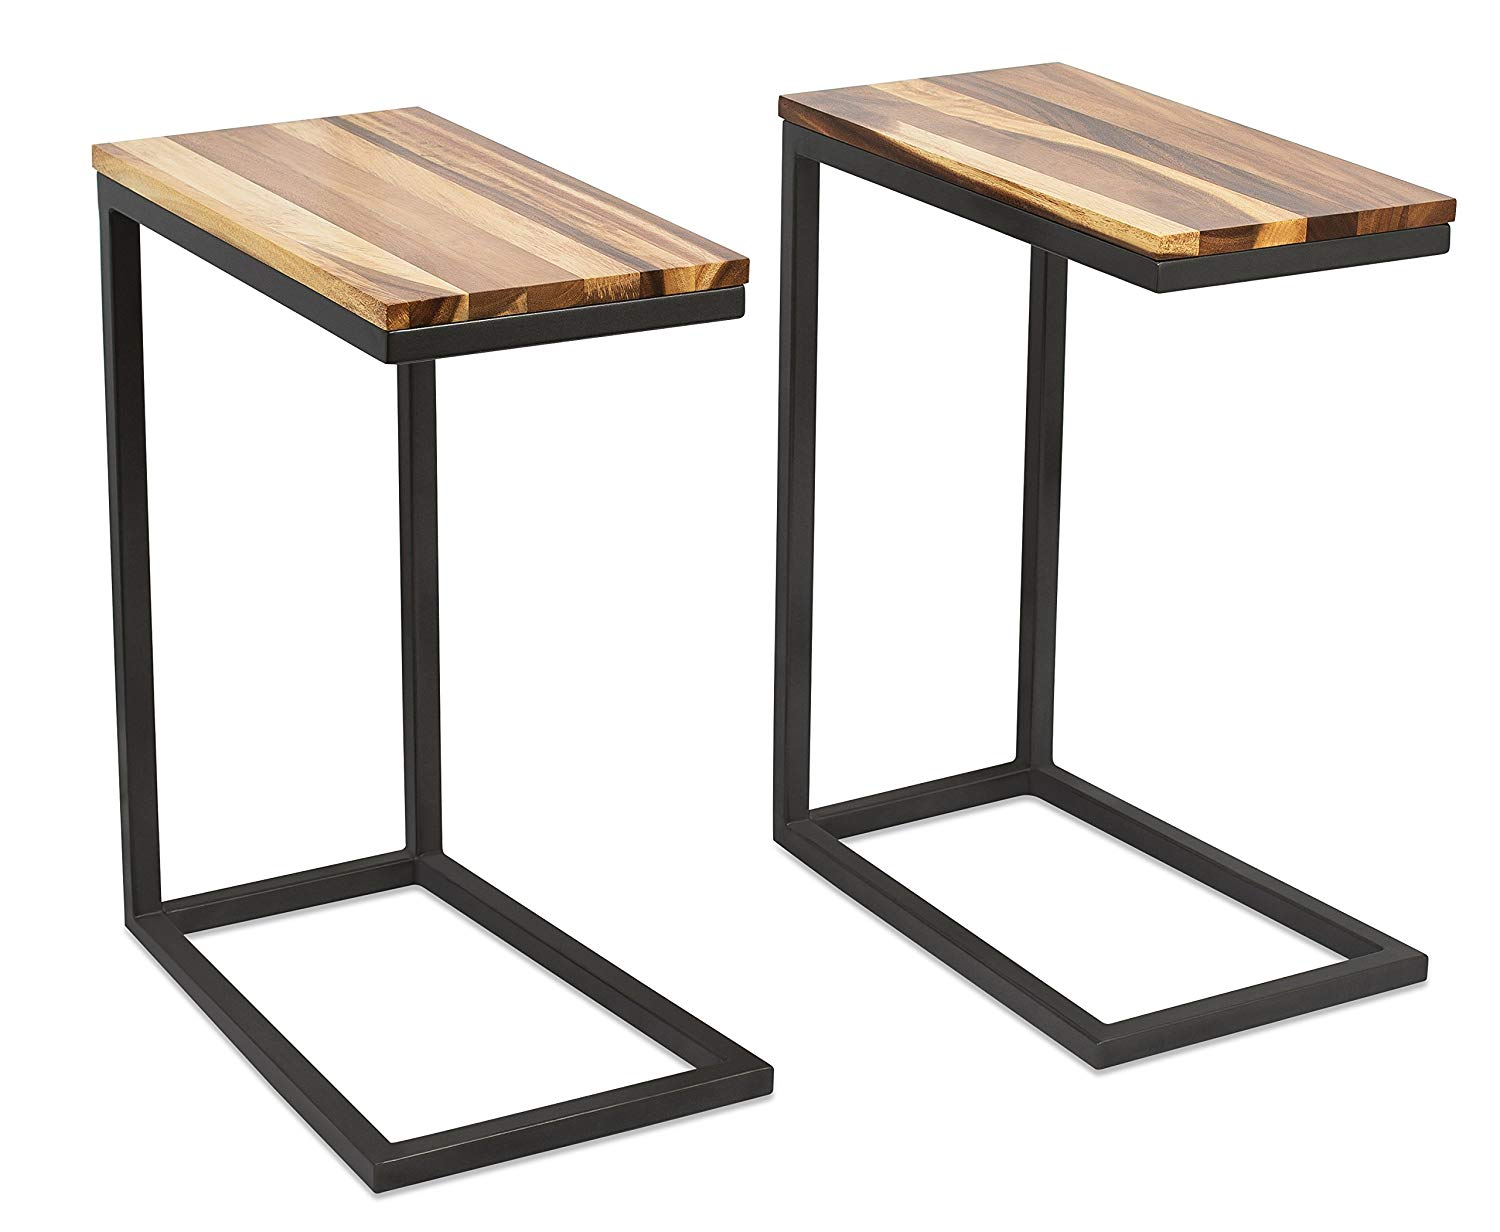 birdrock home acacia wood tray side table set room essentials hairpin accent walnut industrial design natural sofa snack end kitchen dining rustic unstained furniture modern